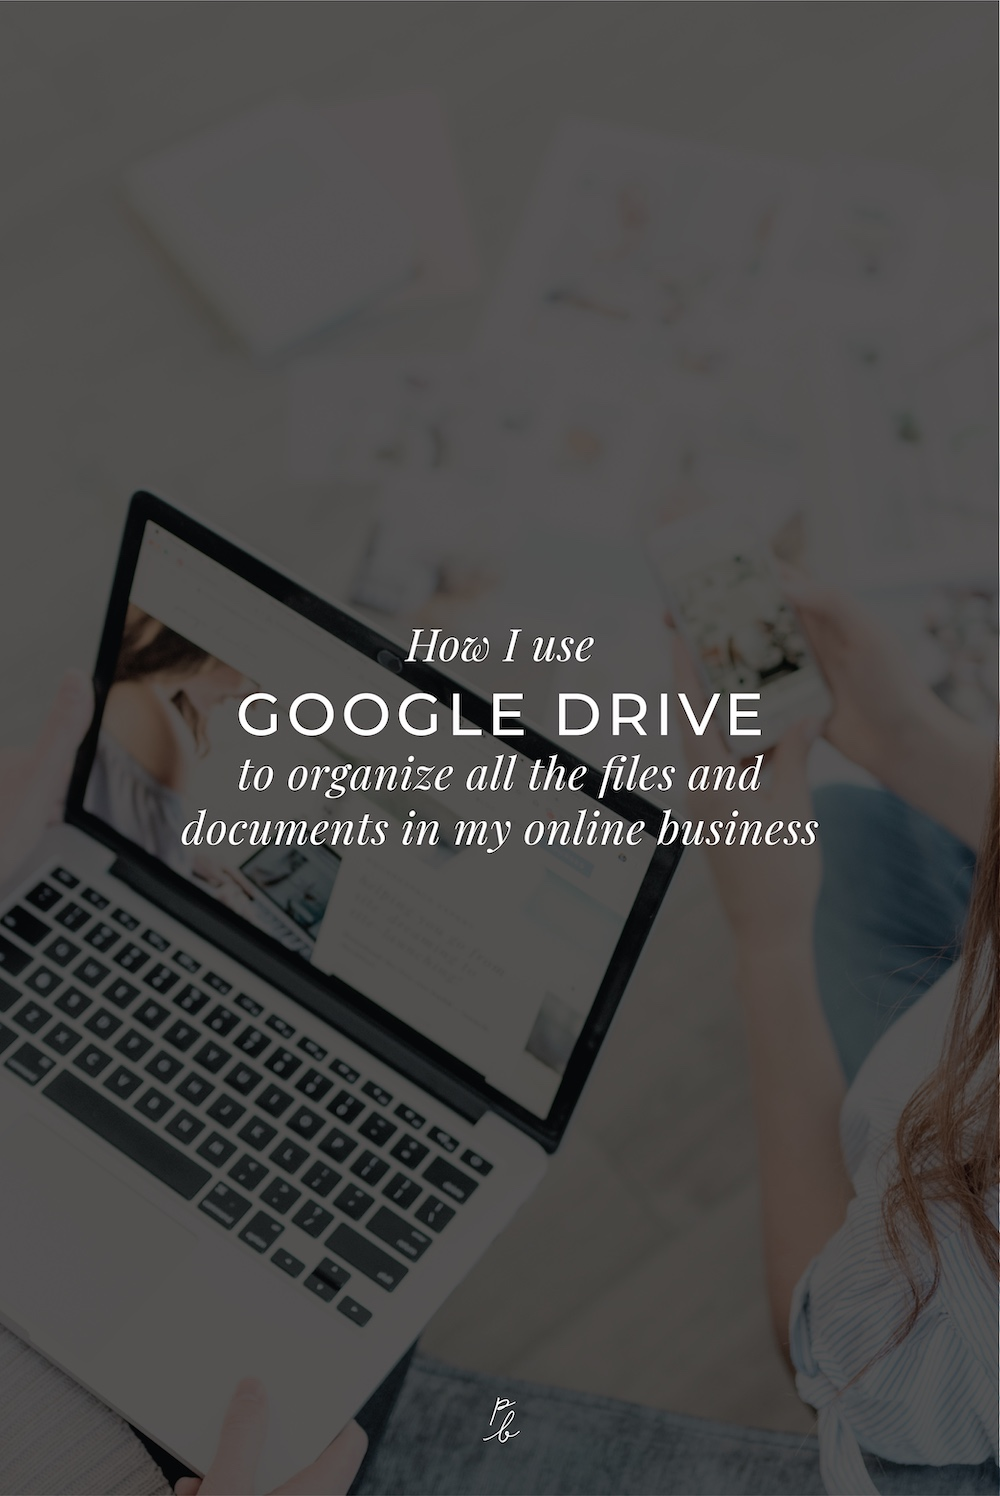 How I use Google Drive to organize allt he fules and documents in my online business.jpg